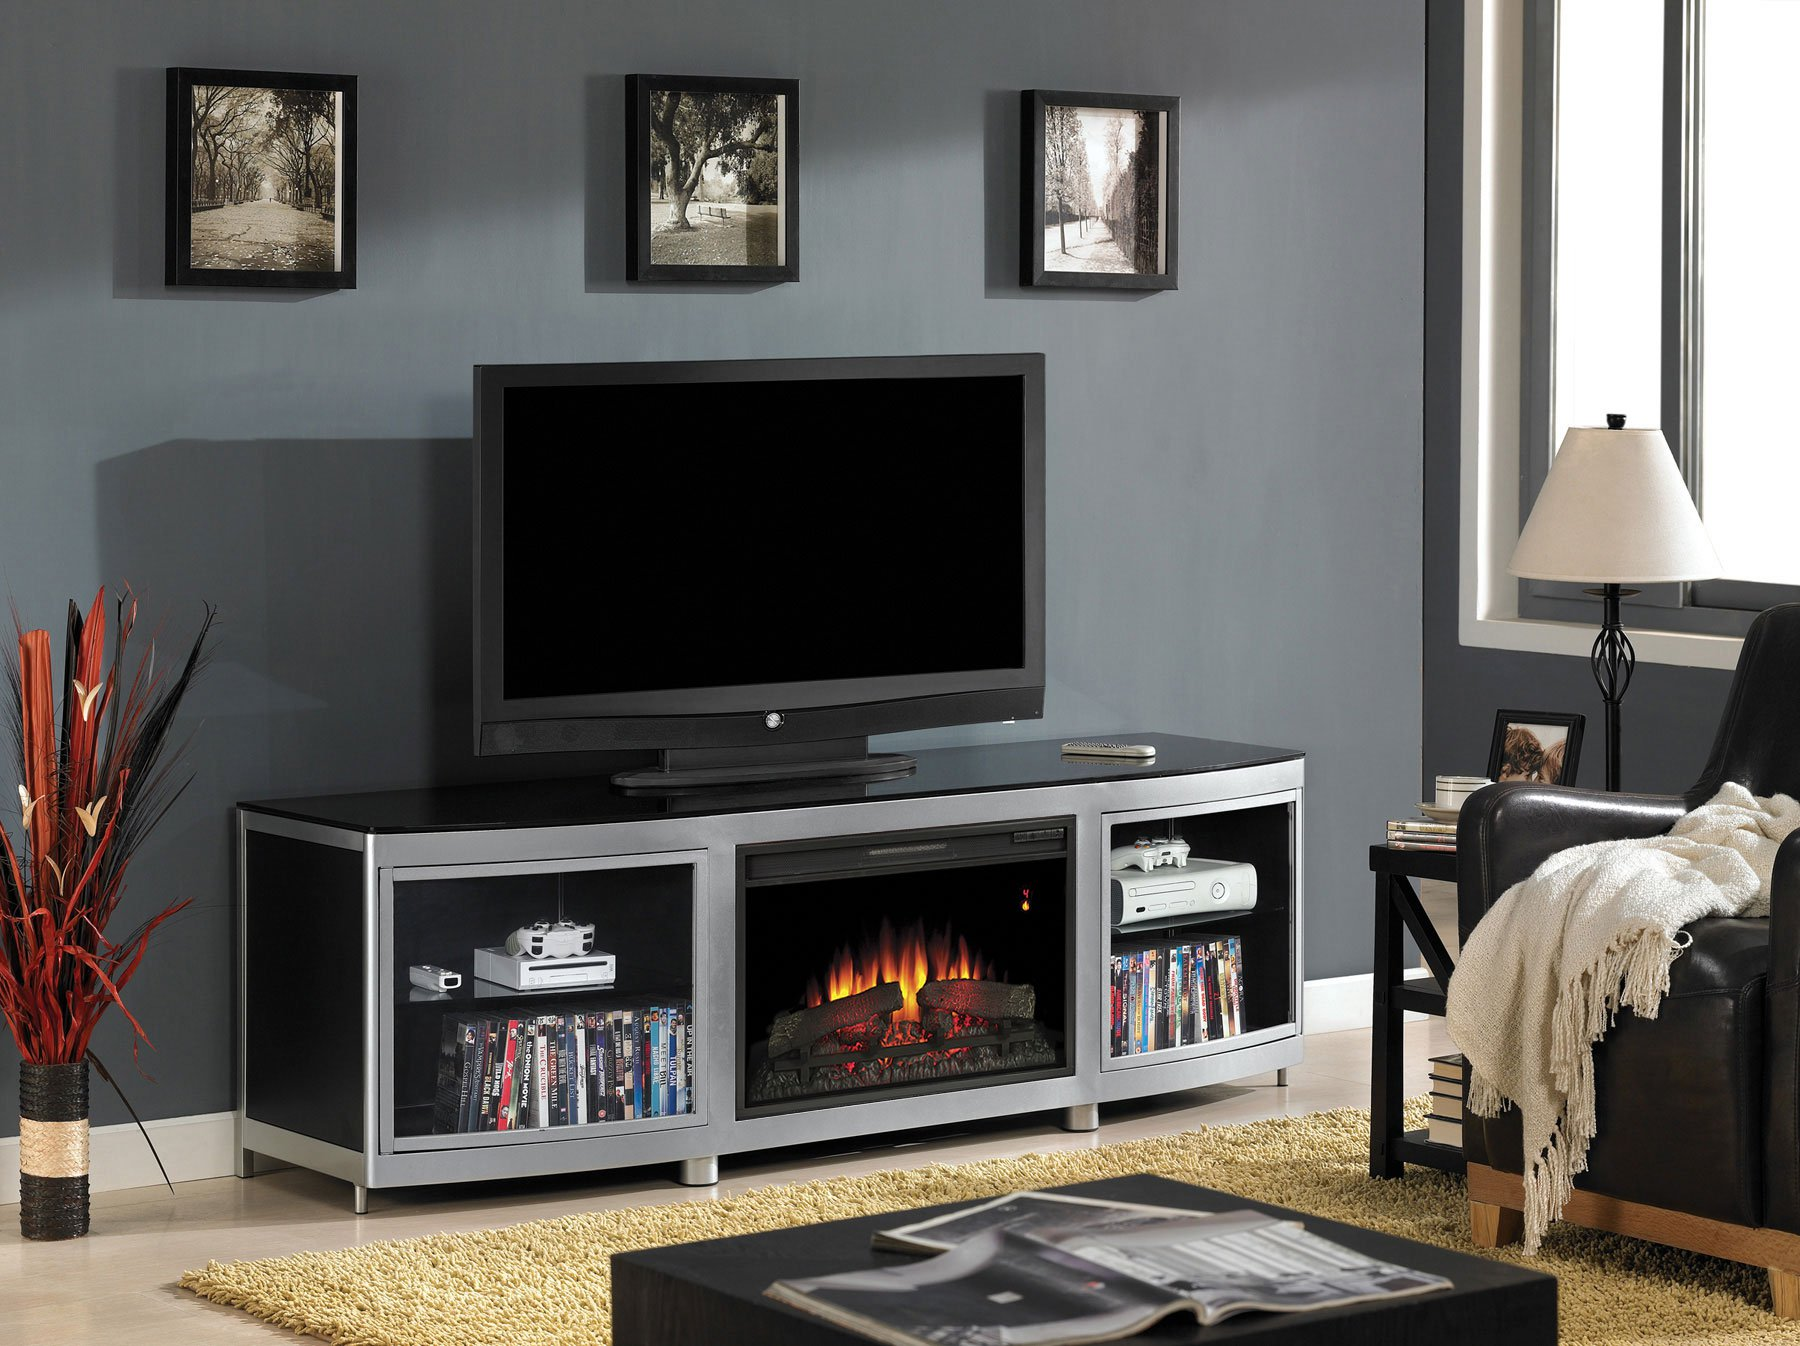 Fireplace Tv Combo Top 10 Best Electric Fireplace Tv Stand Reviews 2019 Guide